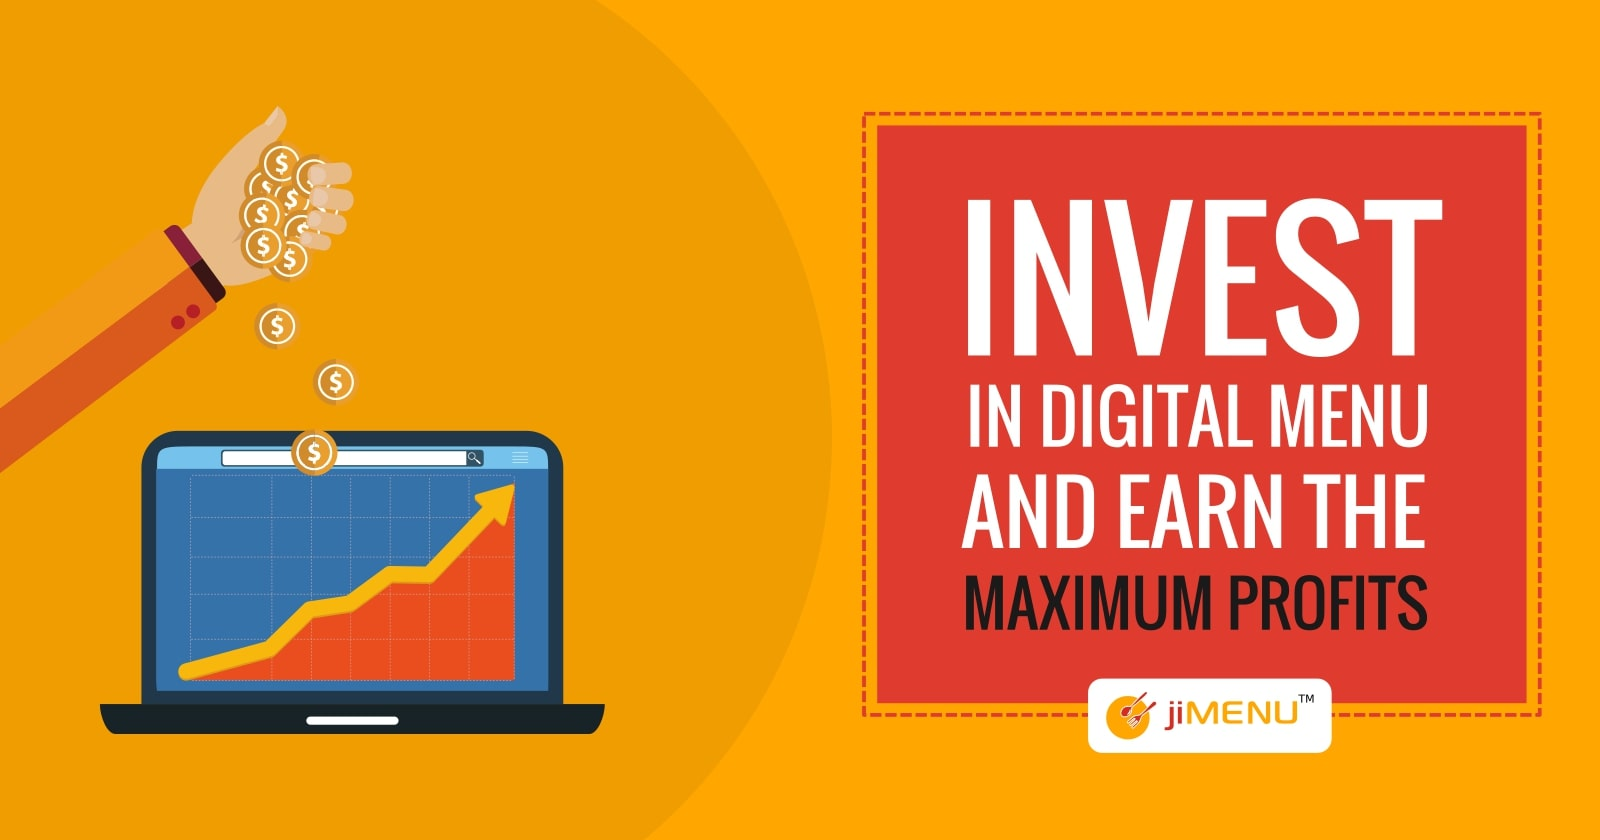 Invest In Digital Menu And Earn The Maximum Profits